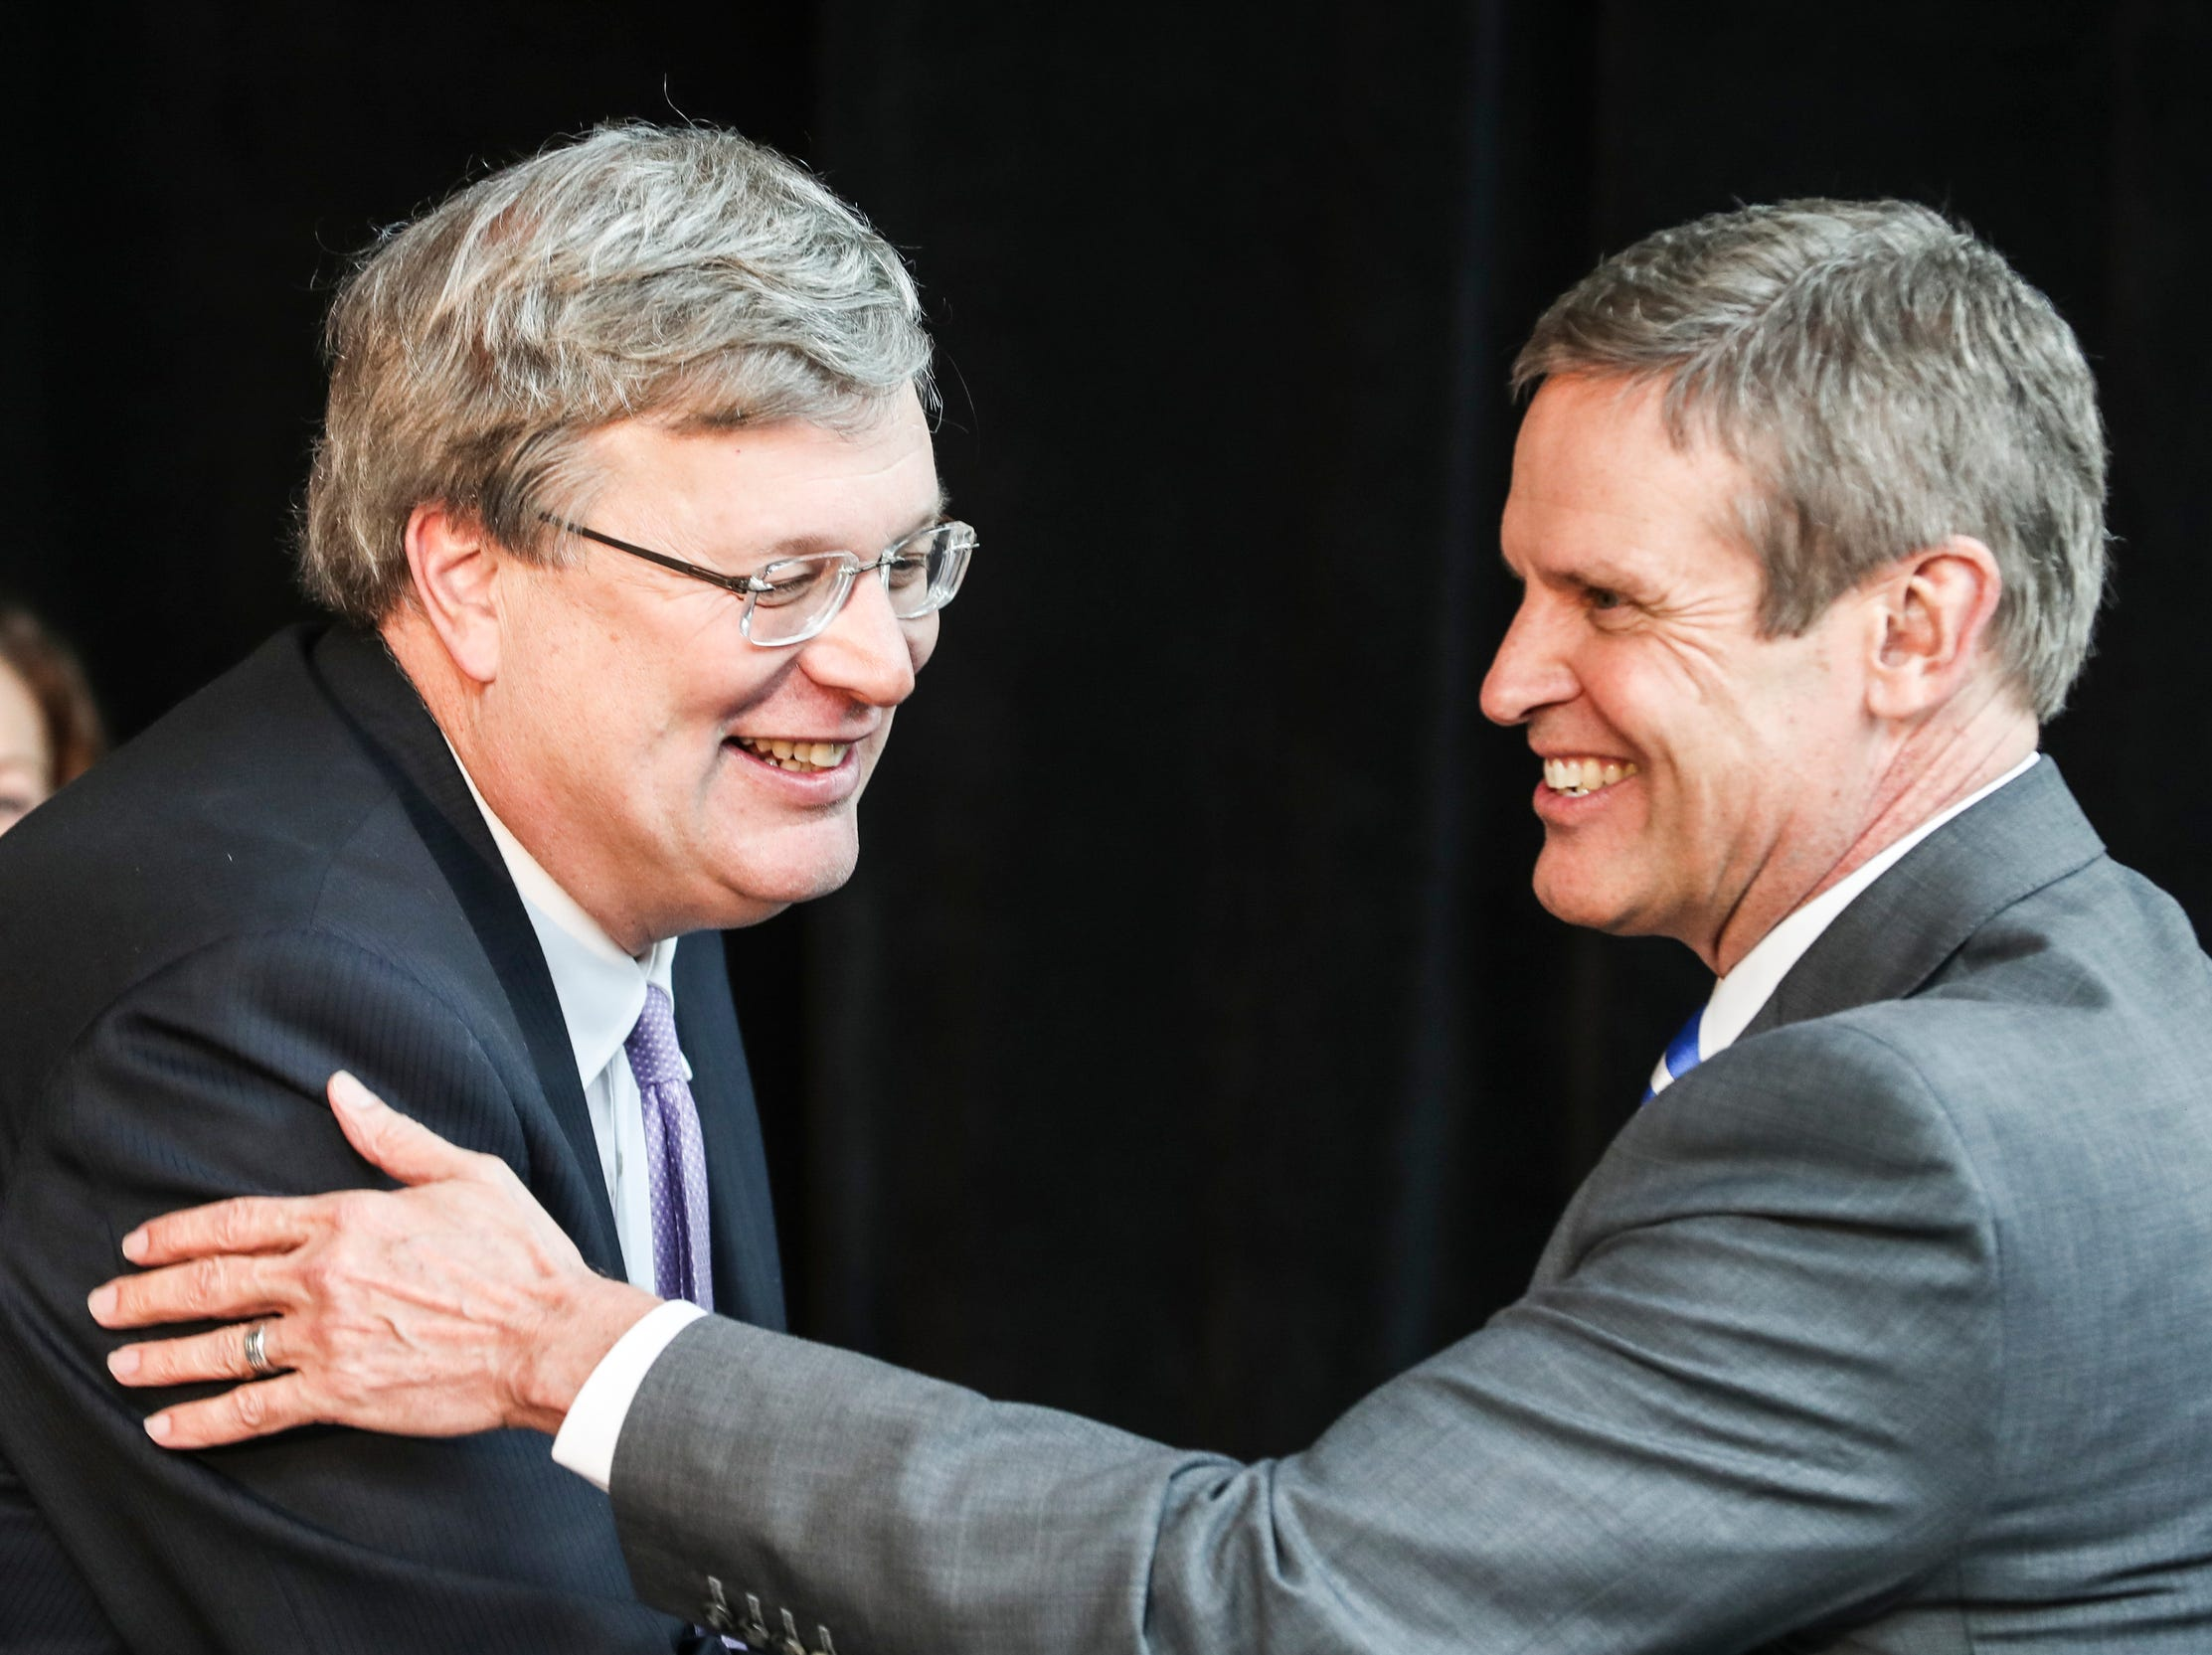 February 12, 2019 - Memphis Mayor Jim Strickland and Gov. Bill Lee are seen during the announcement that FedEx Logistics is relocating to the Gibson Guitar Building. This is Lee's first economic development announcement since taking office.